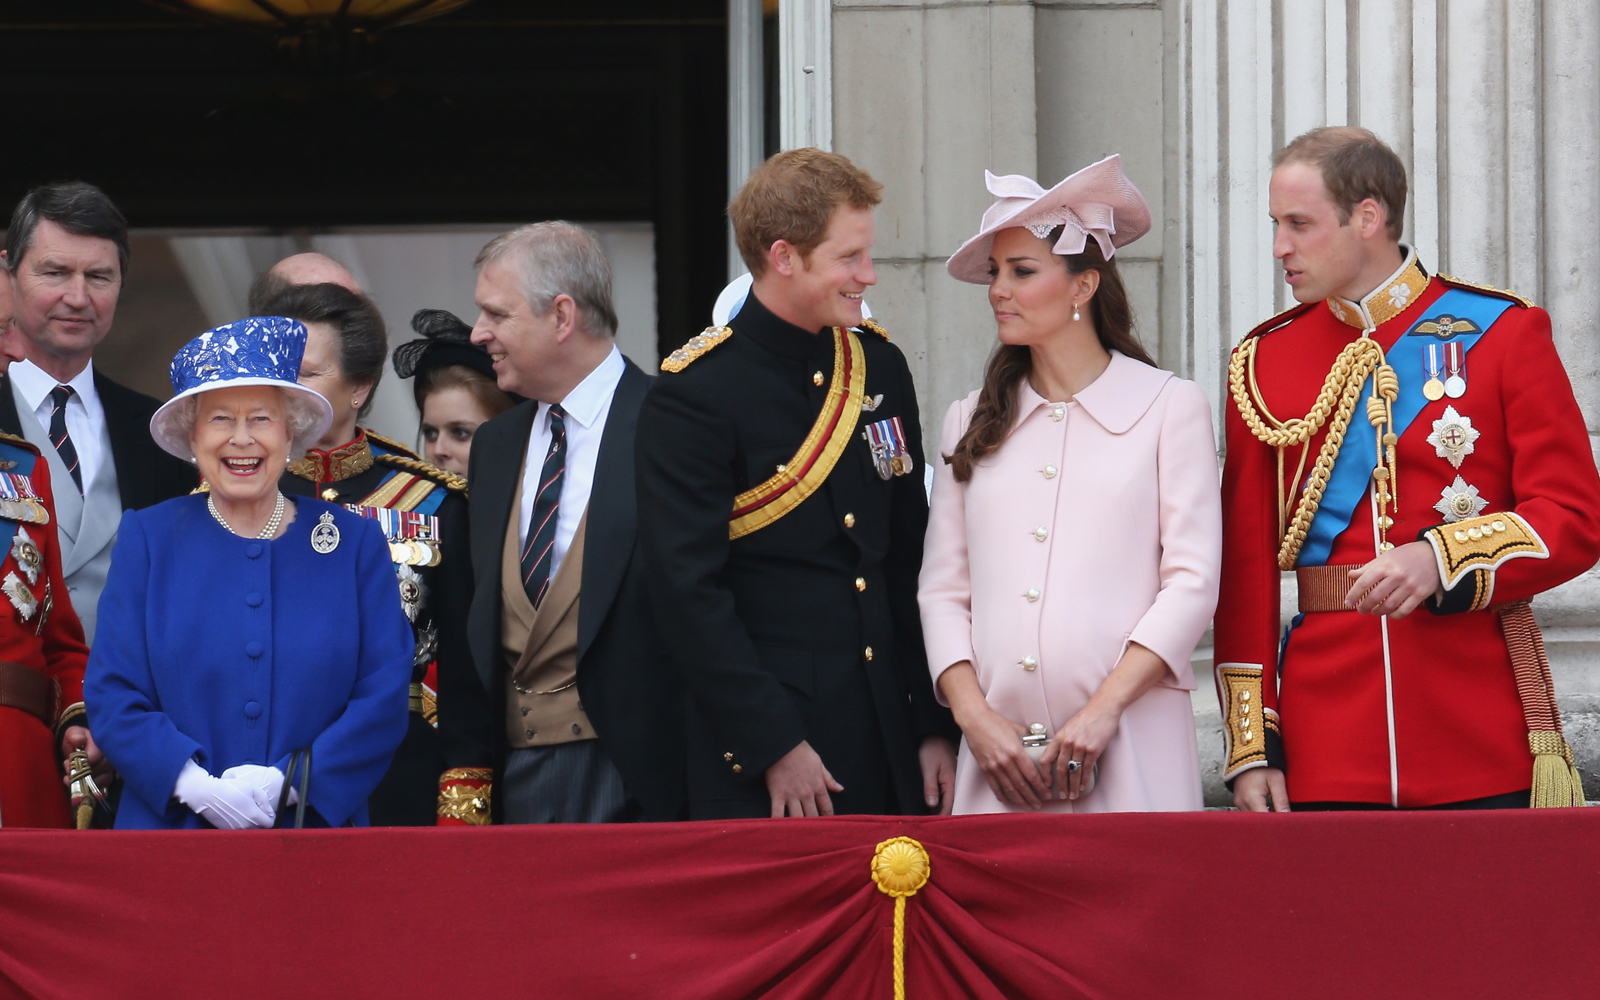 Queen Elizabeth II laughs next to Prince Harry, Catherine, Duchess of Cambridge and Prince William, Duke of Cambridge stand on the balcony at Buckingham Palace d